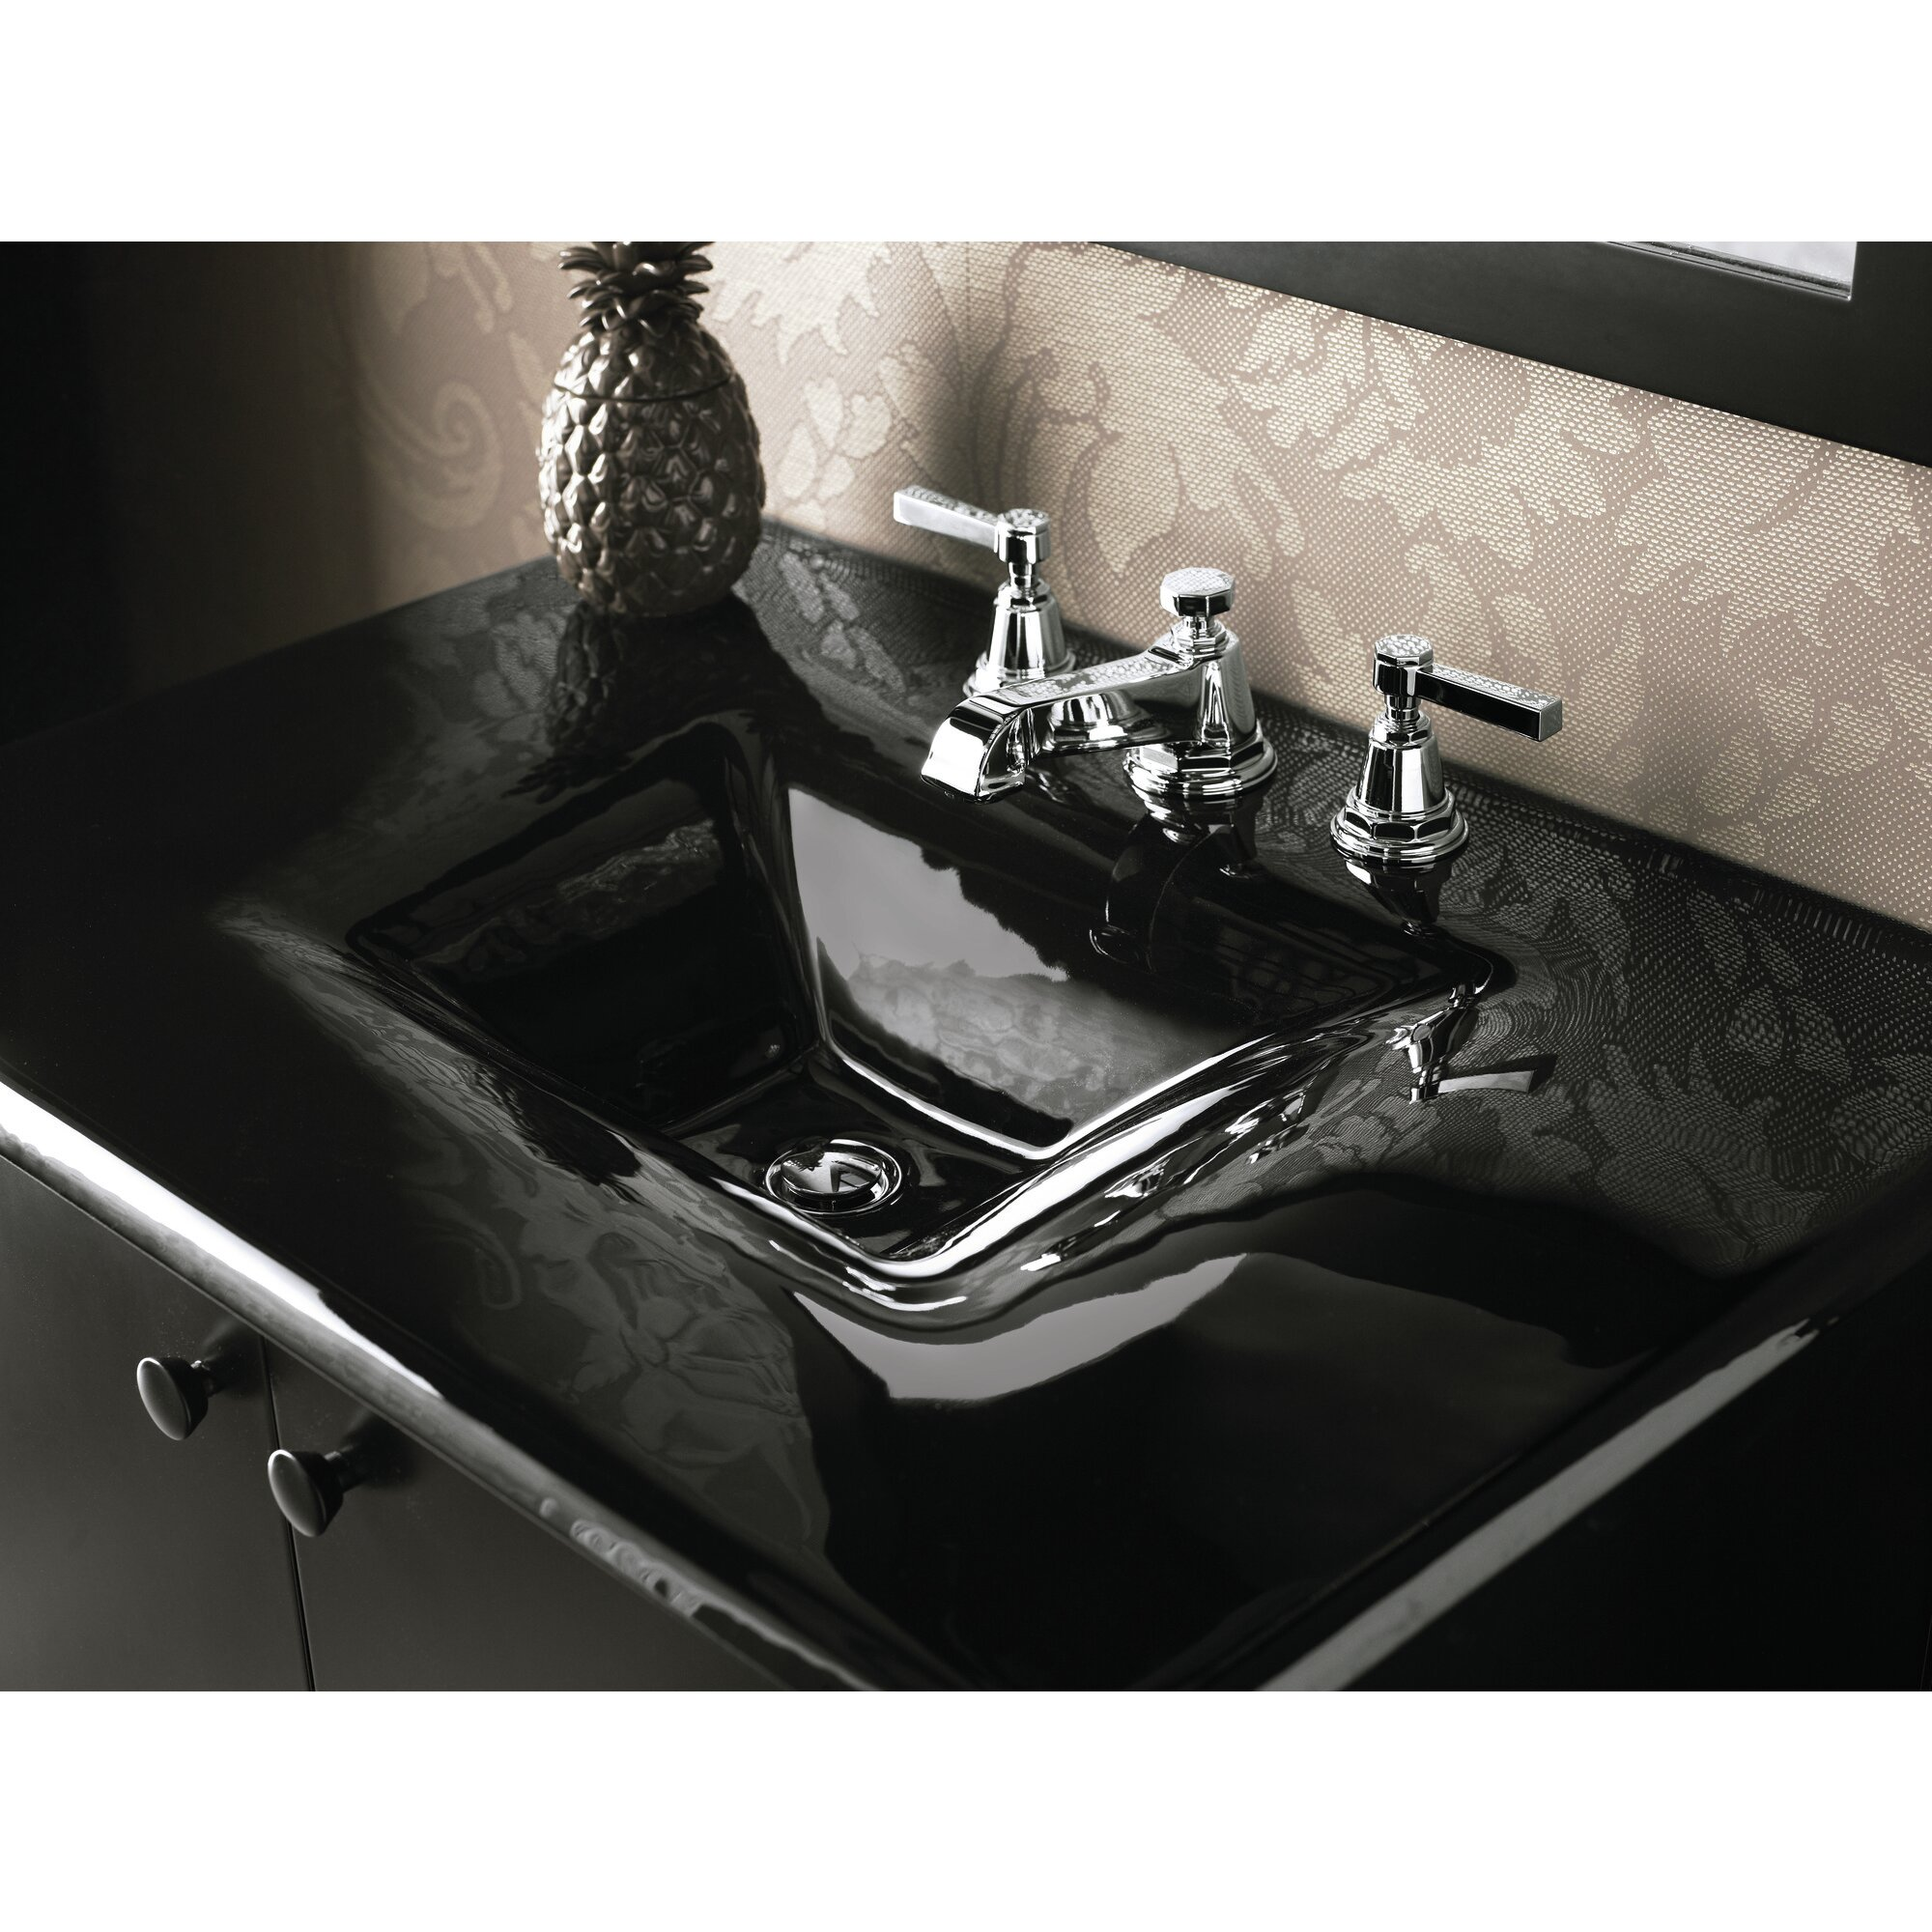 K 13132 4a Cp Kohler Pinstripe Widespread Bathroom Faucet With Drain Assembly Reviews Wayfair